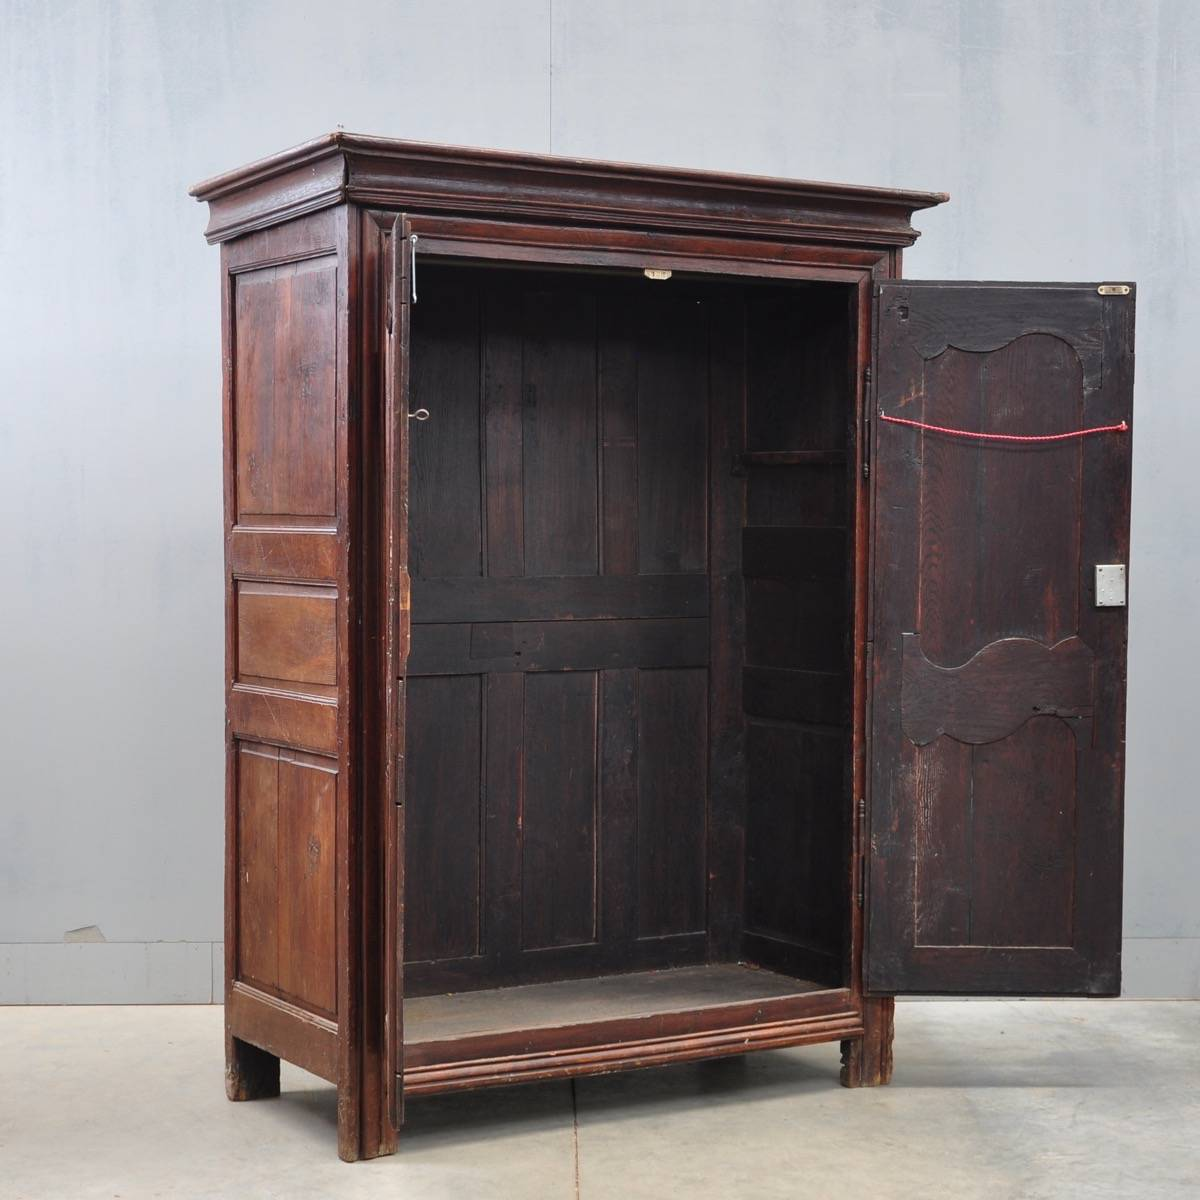 bassett armoire bassett mirror company u2013 collette mirrored jewelry armoire borghese. Black Bedroom Furniture Sets. Home Design Ideas